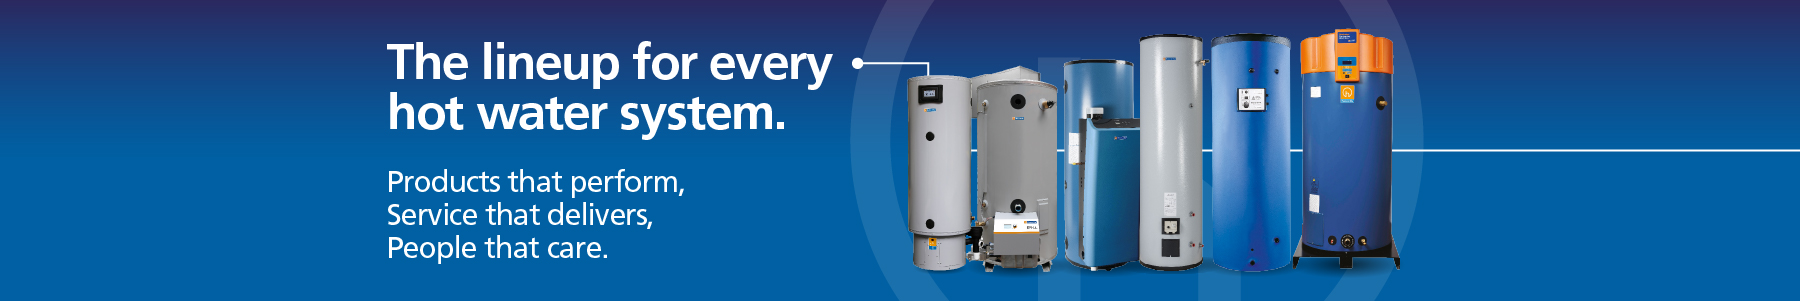 Hot water products from Hamworthy